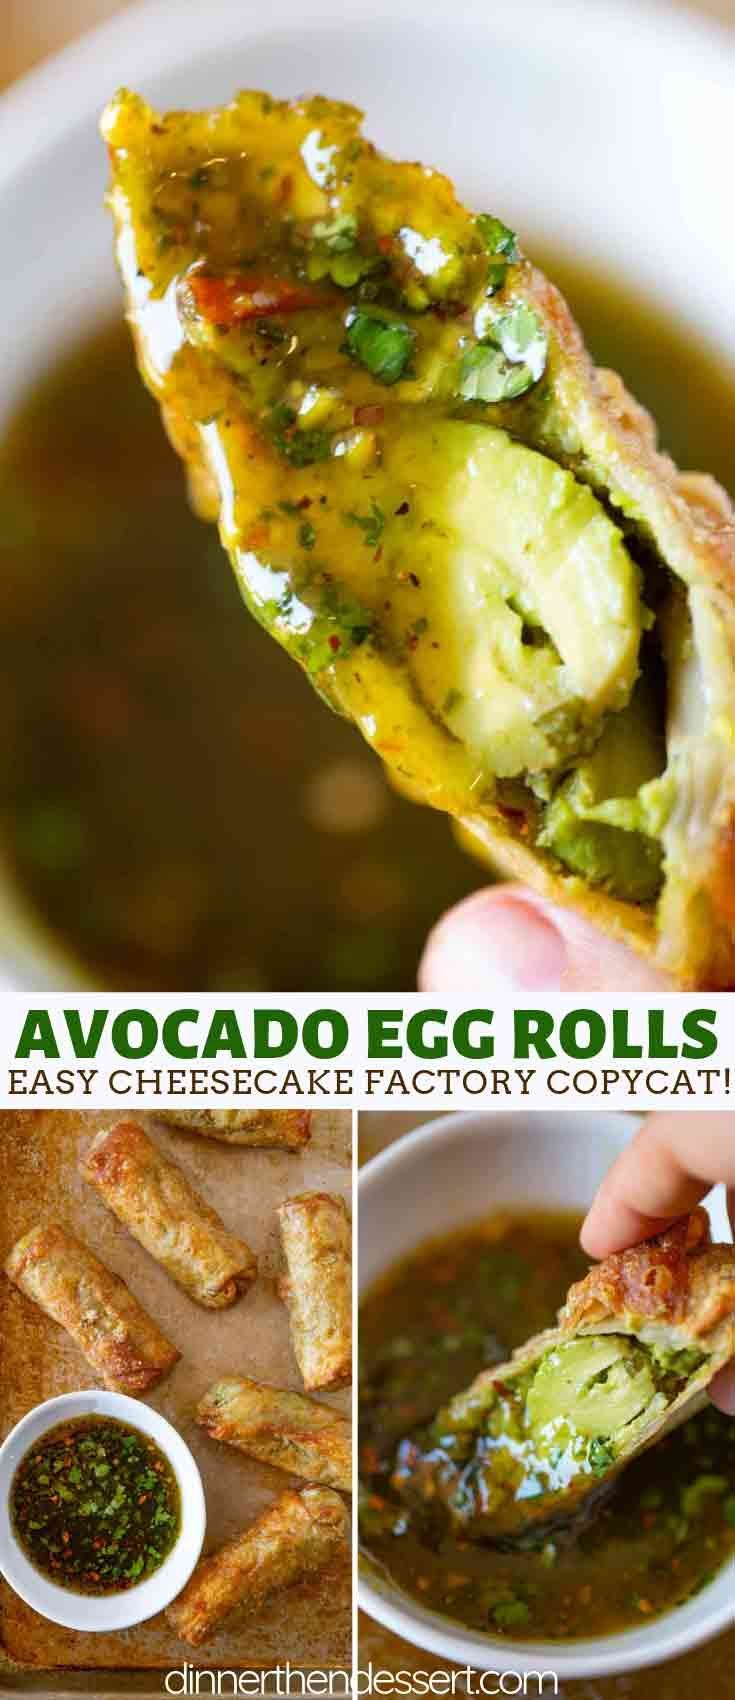 Cheesecake Factory Avocado Egg Rolls are the perfect fresh avocado and sun dried tomato filled egg